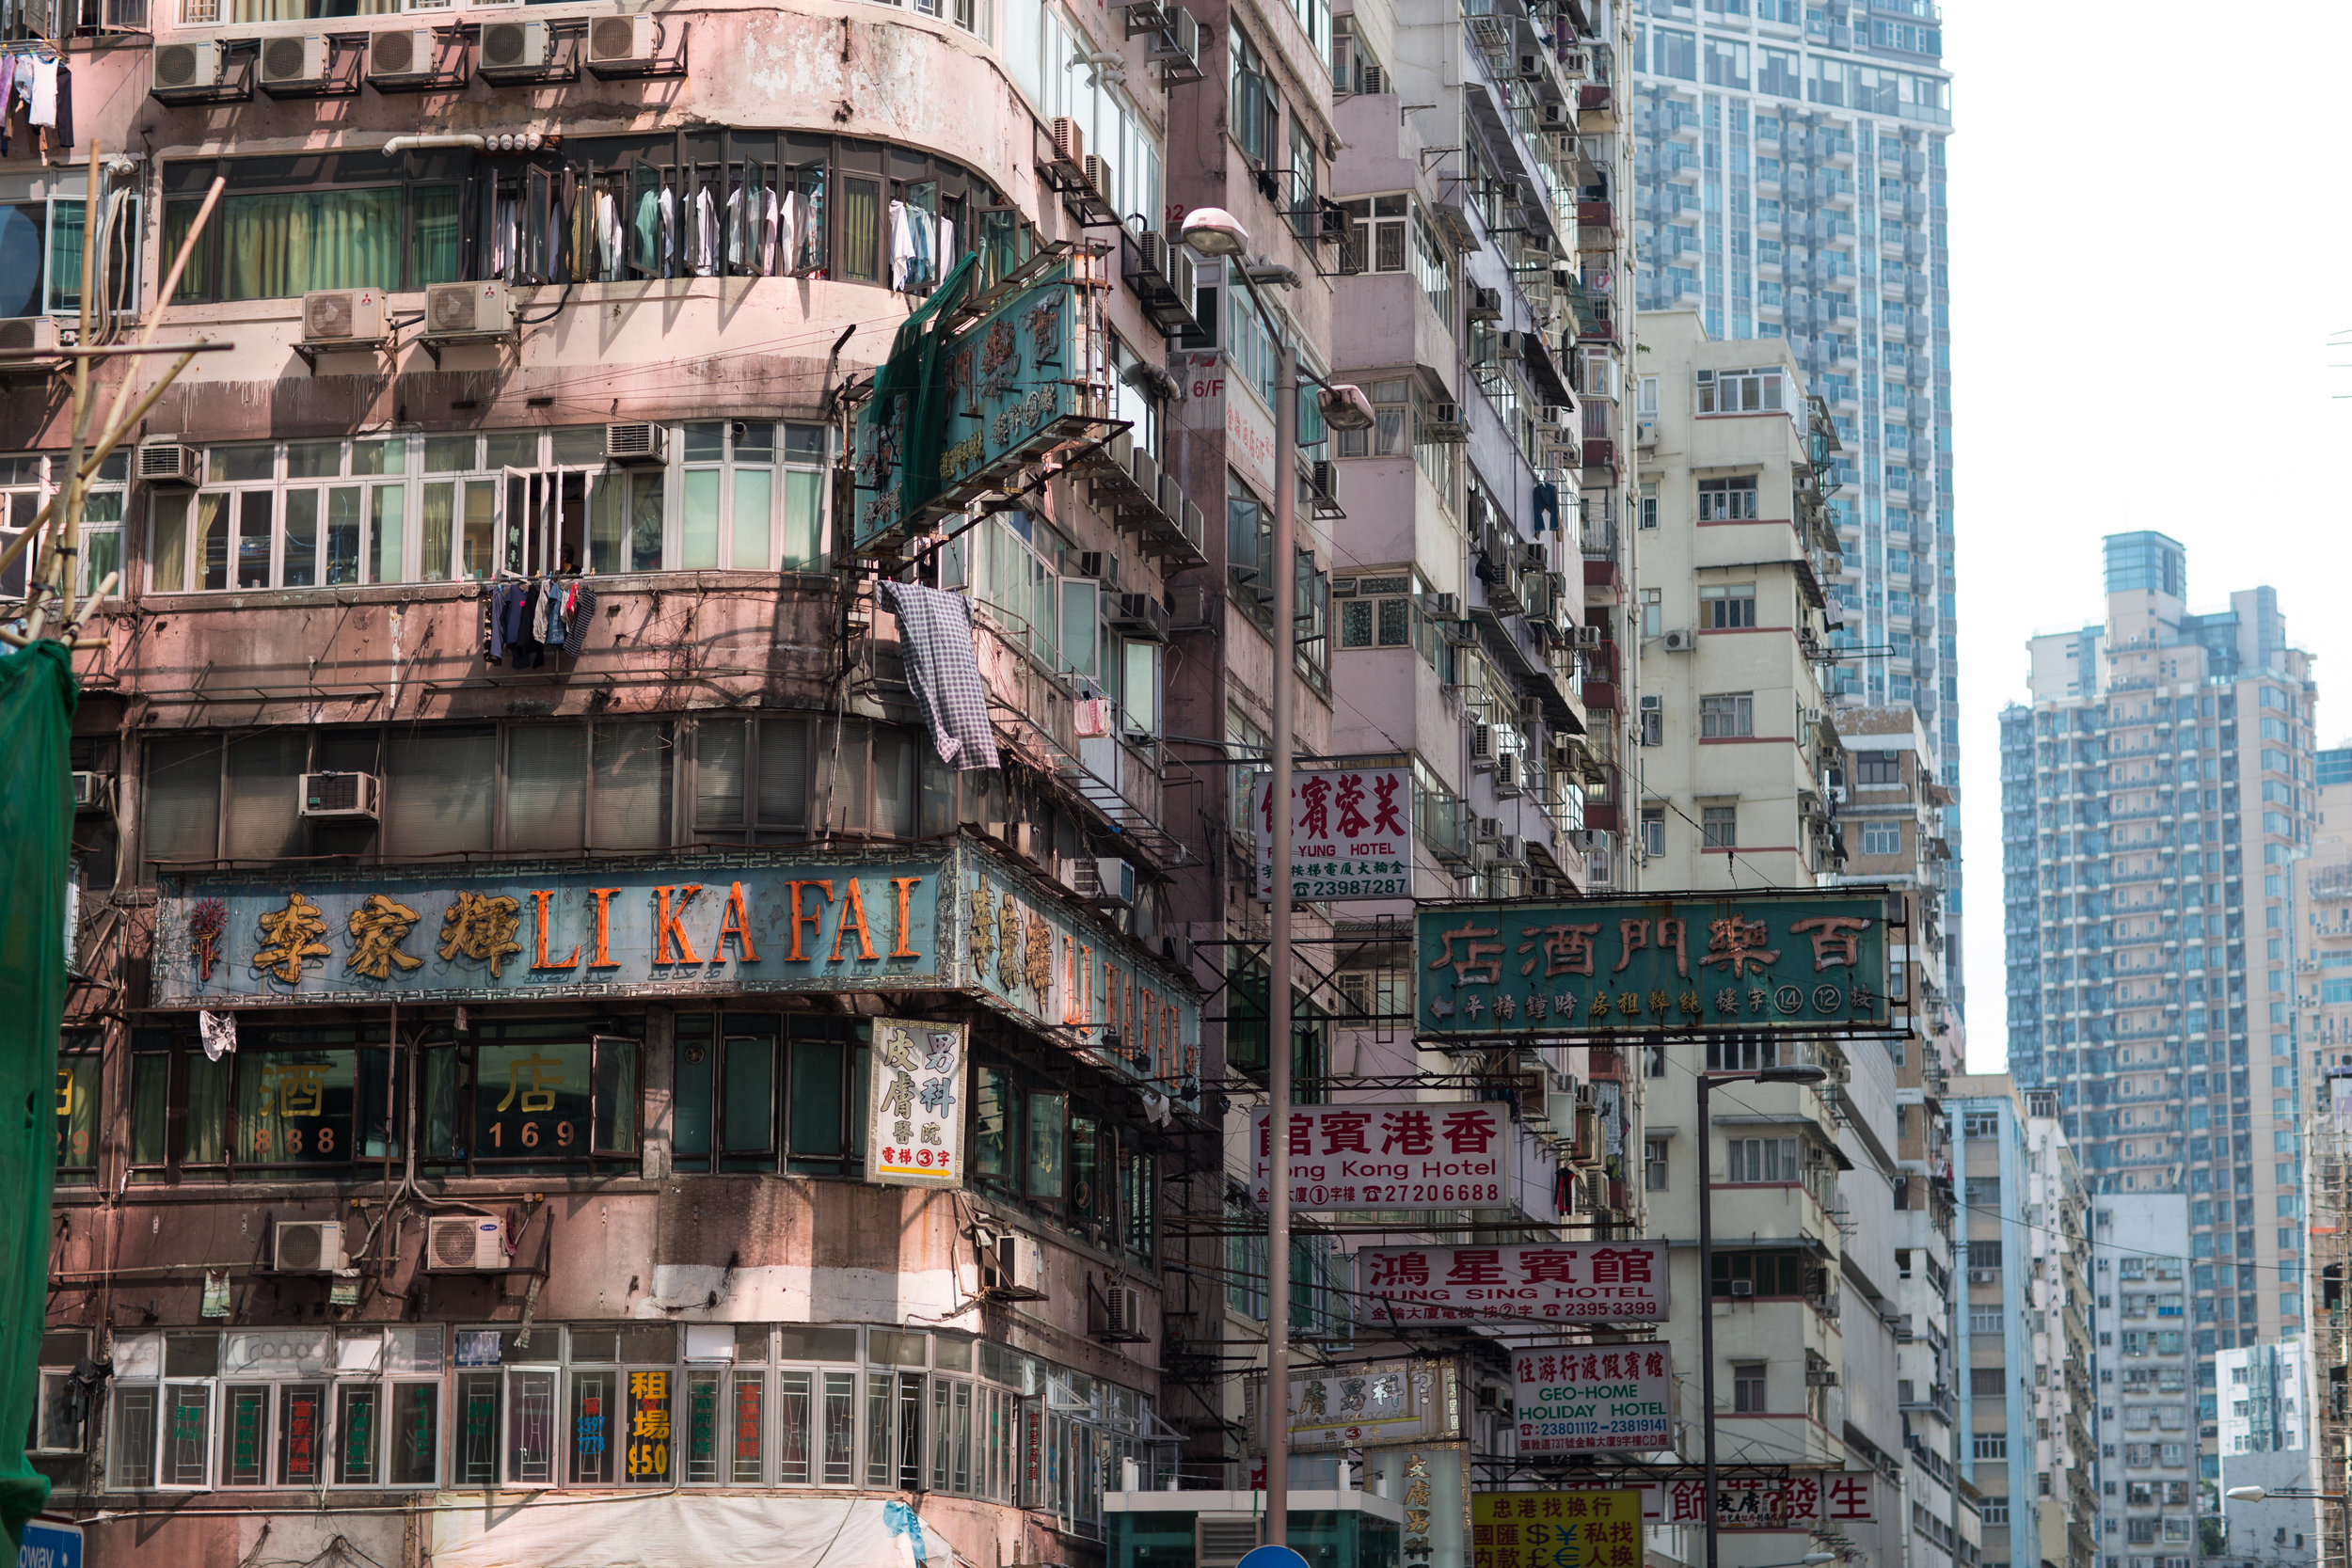 Apartment buildings above the busy commercial district of Mongkok in Hong Kong